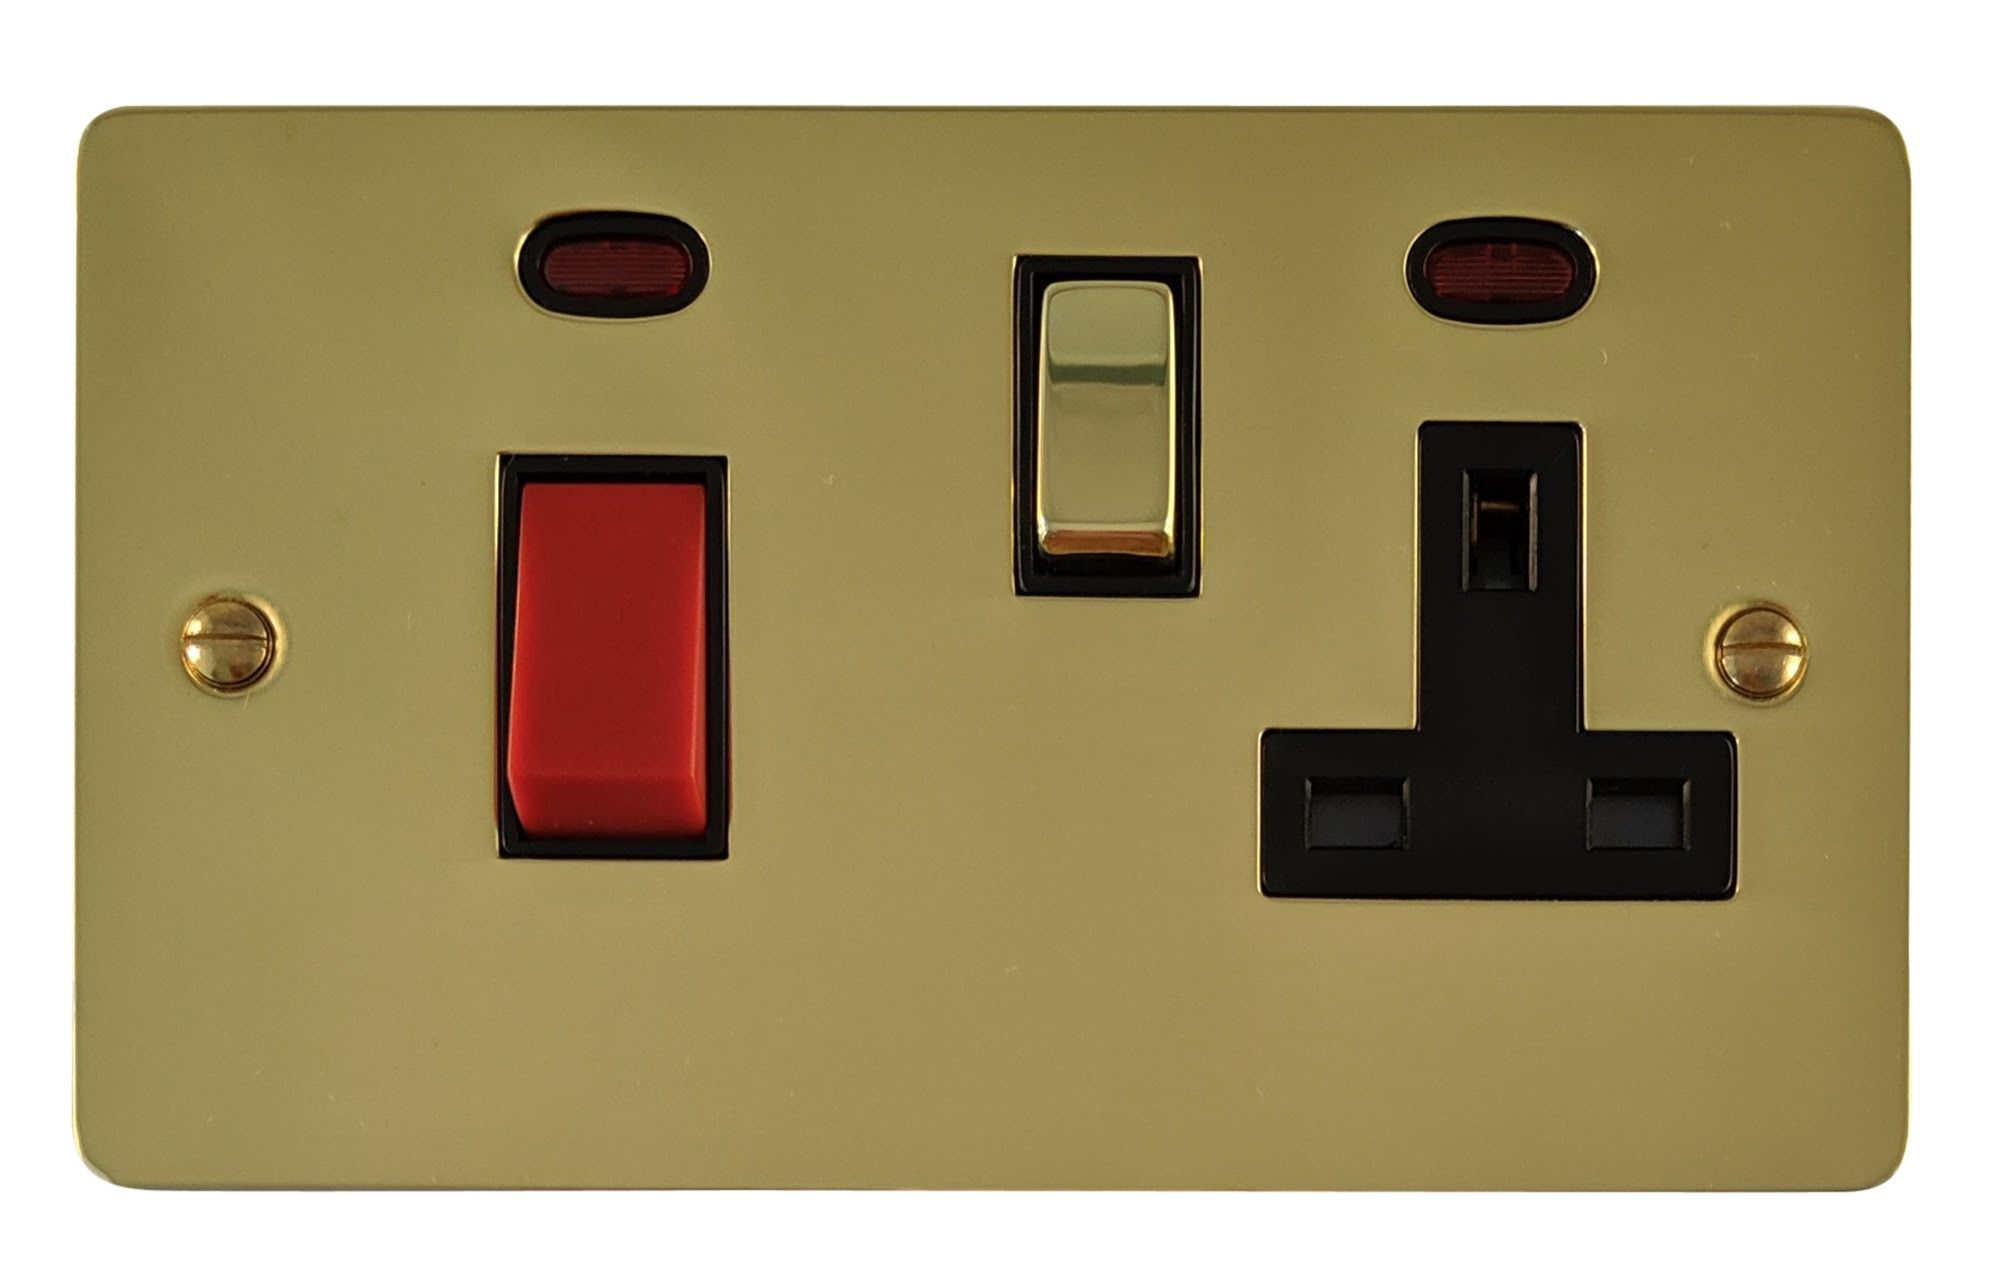 G&H FB329 Flat Plate Polished Brass 45 Amp DP Cooker Switch & 13A Switched Socket